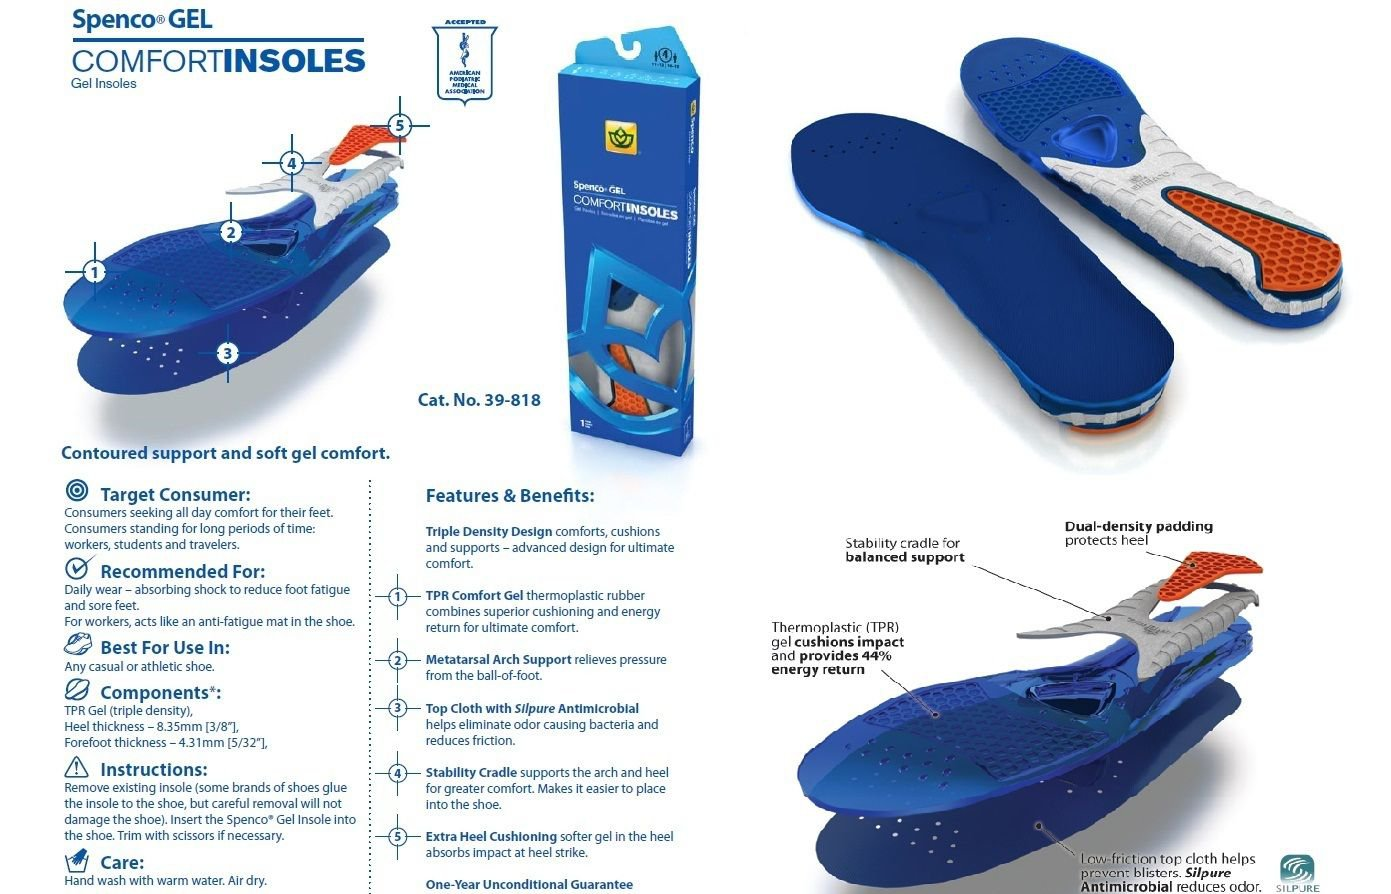 Spenco Gel Comfort Insoles Inserts Anti-Slip Support 39-818 Men's 10-11 Size